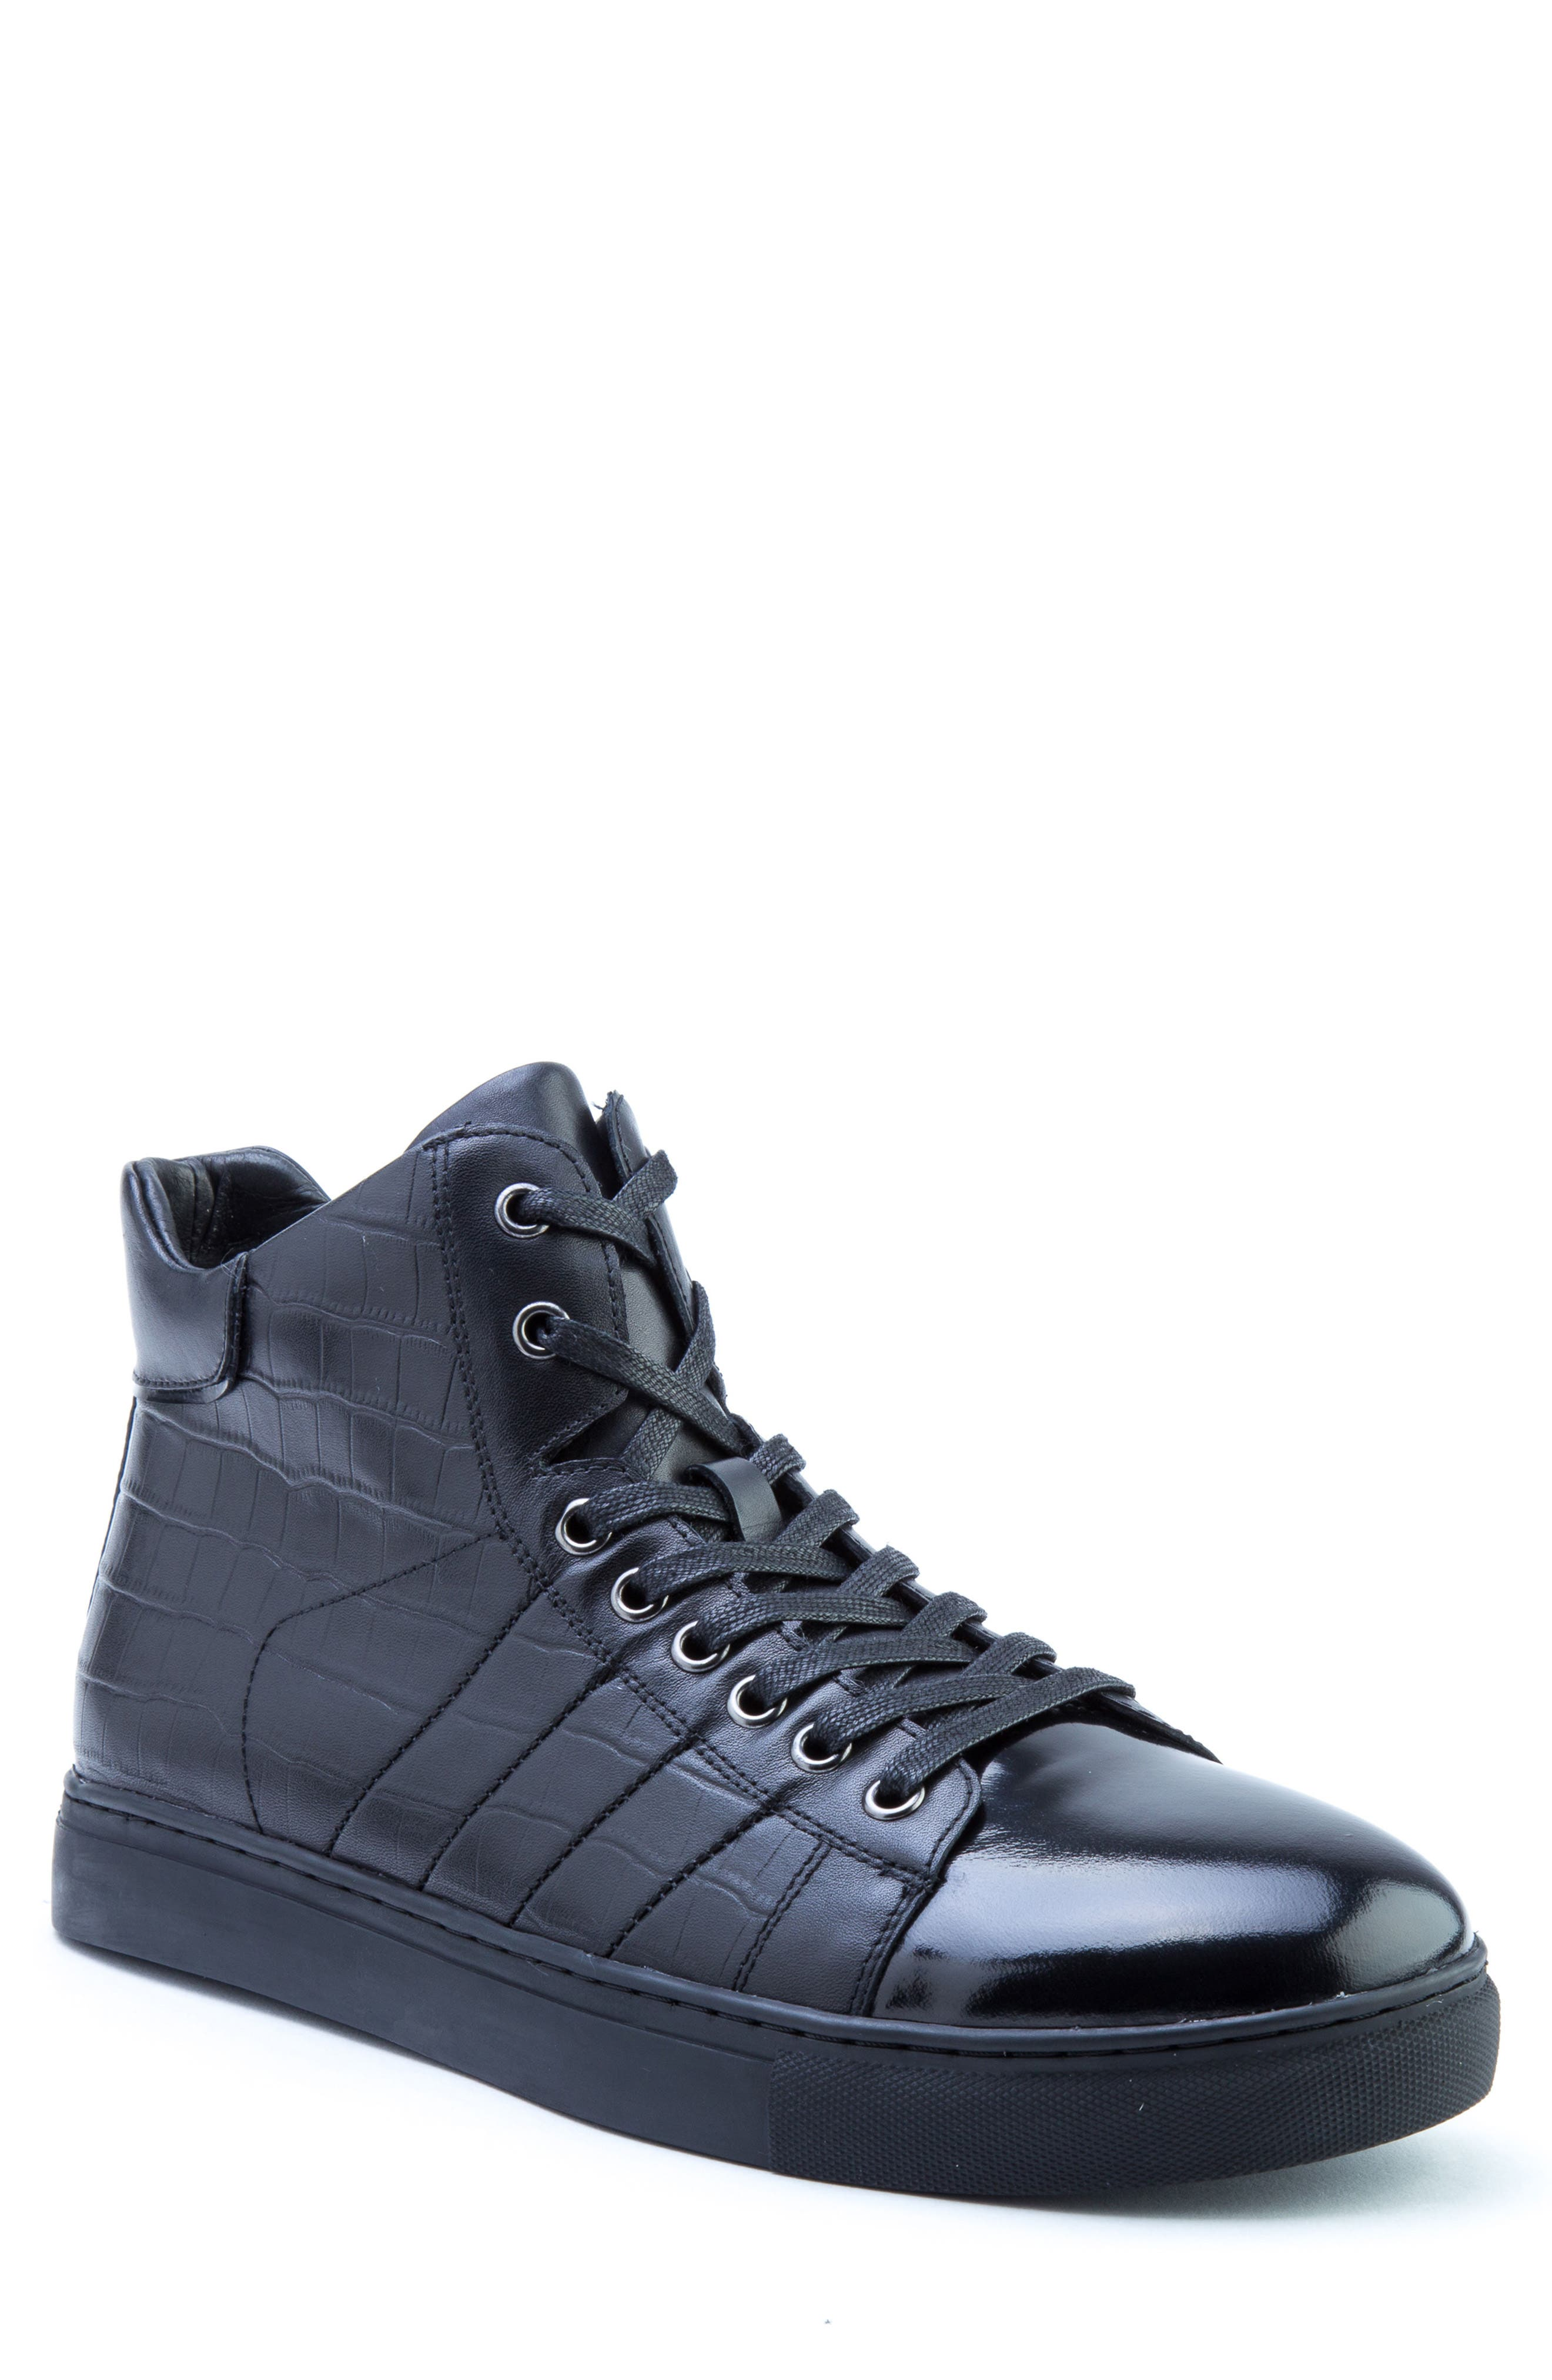 Clift High Top Sneaker,                         Main,                         color, 001